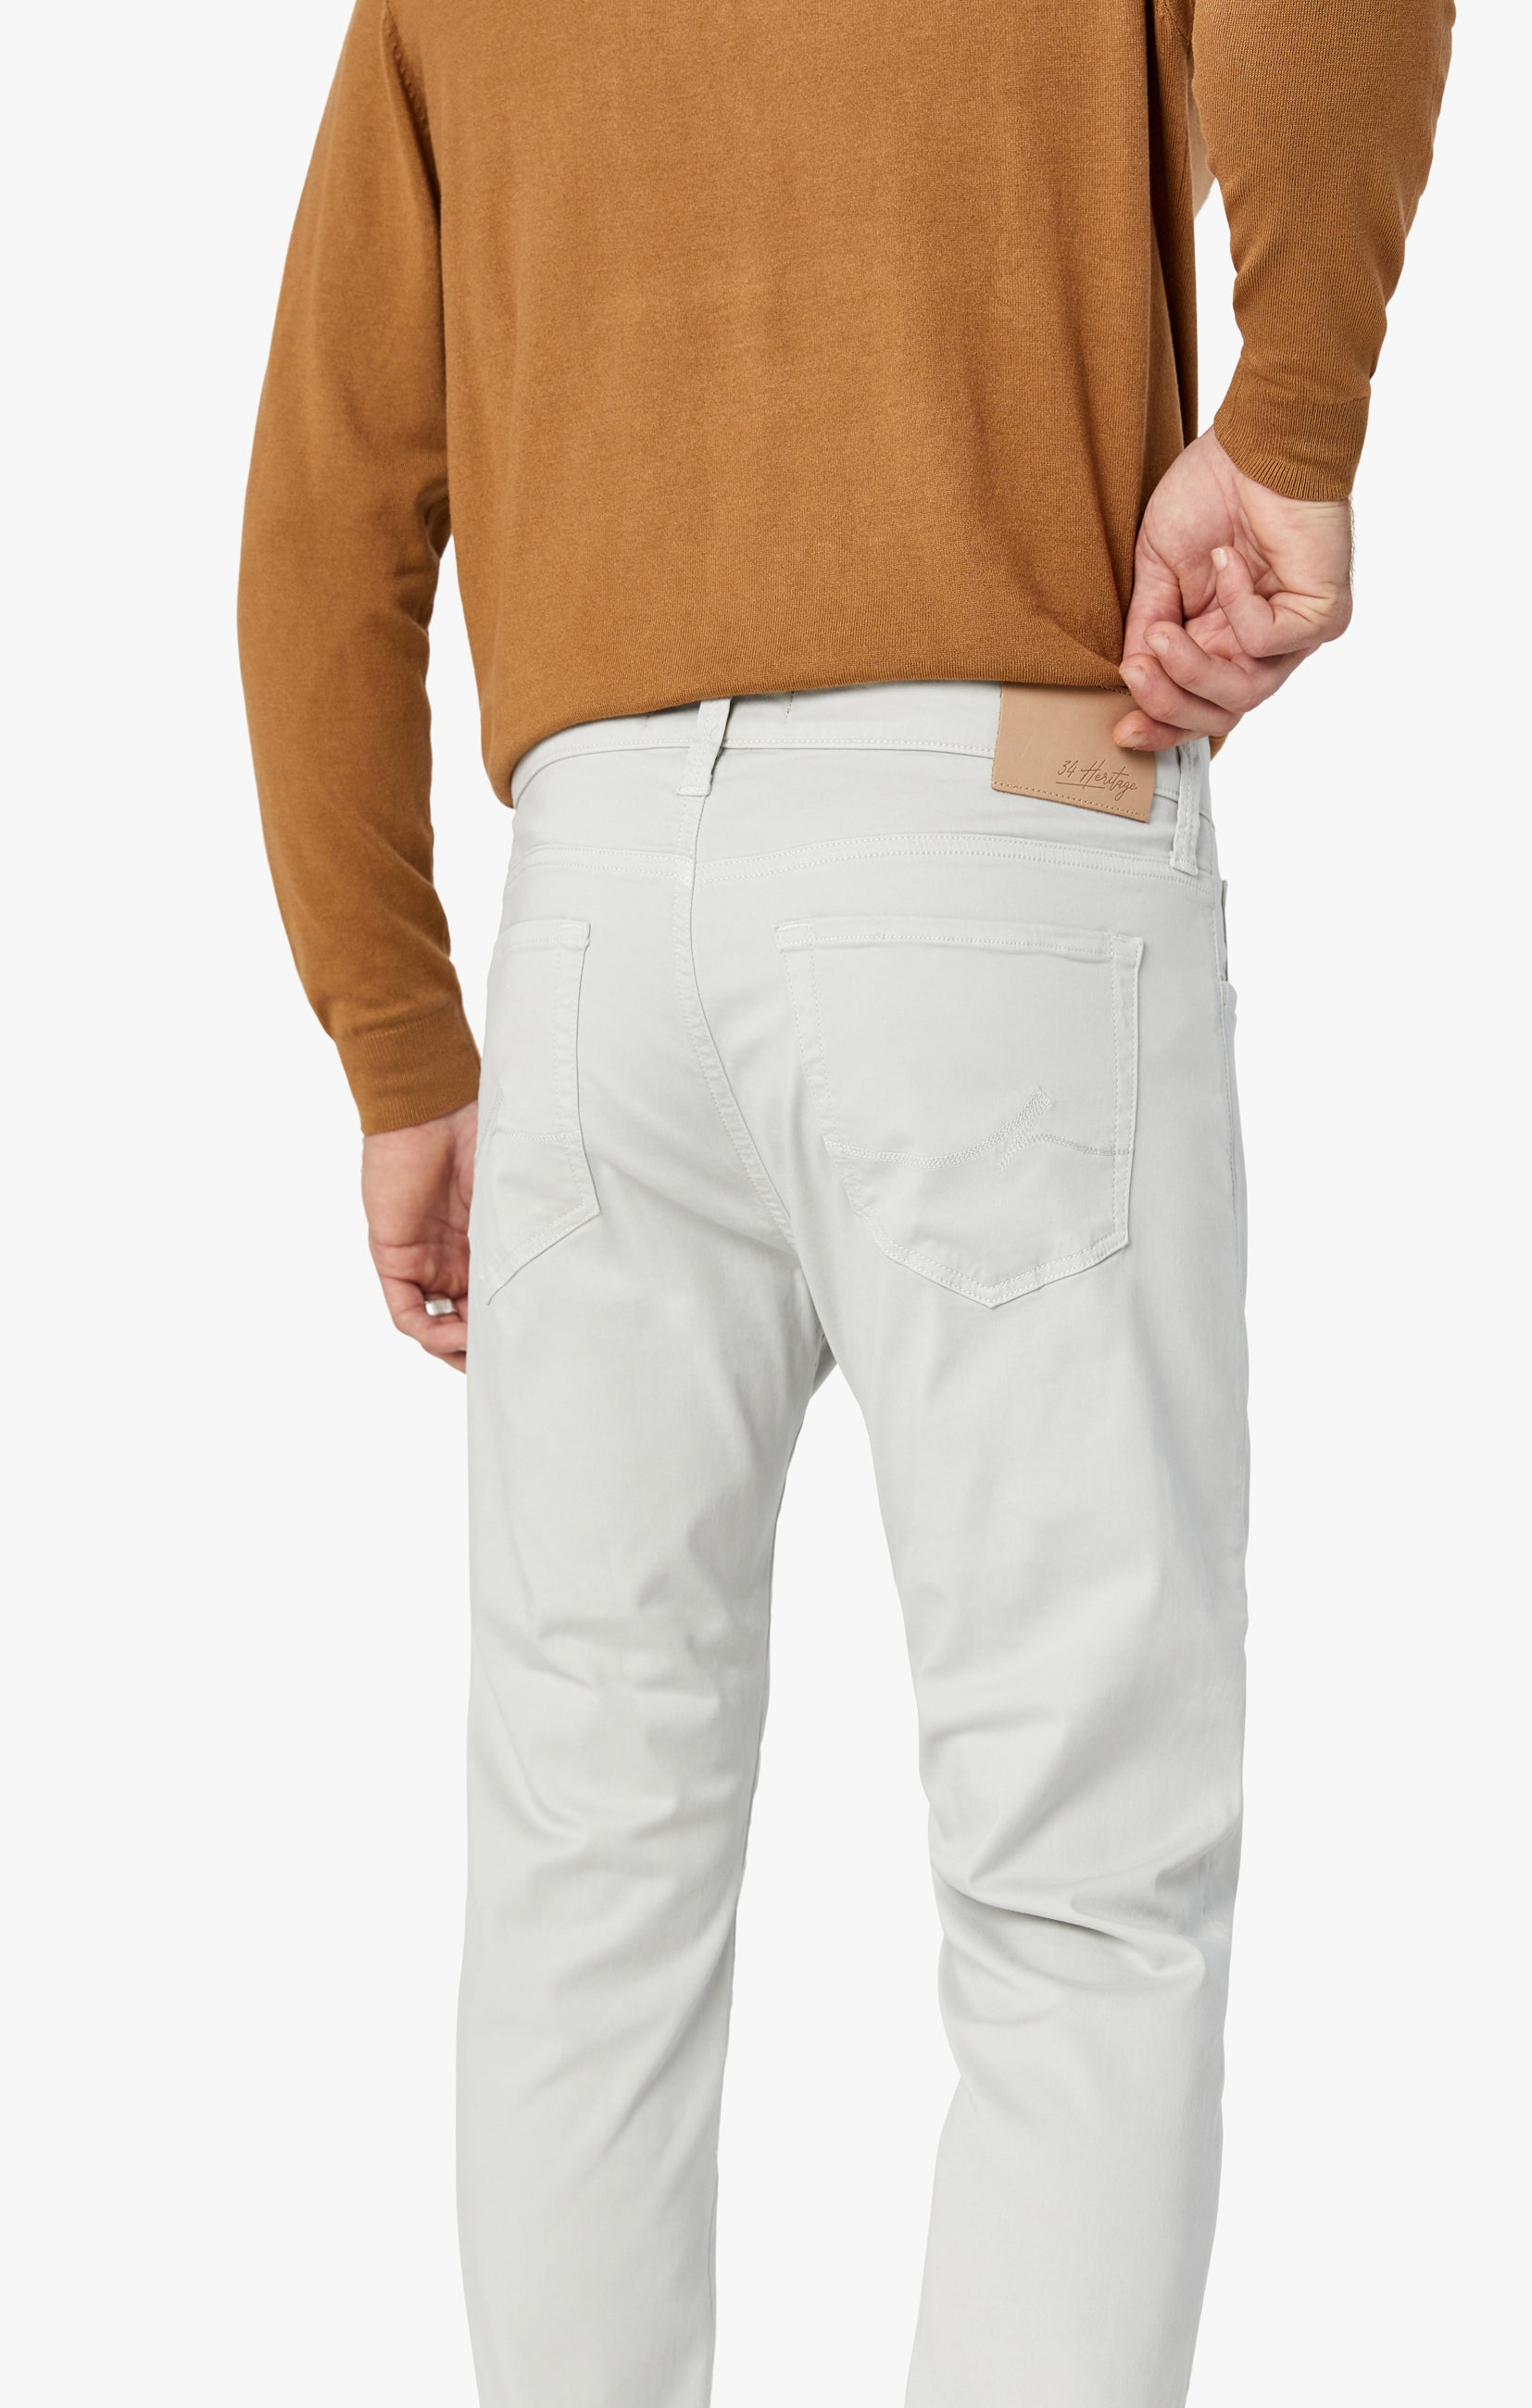 Courage Straight Leg Jeans in Bone Twill Image 8